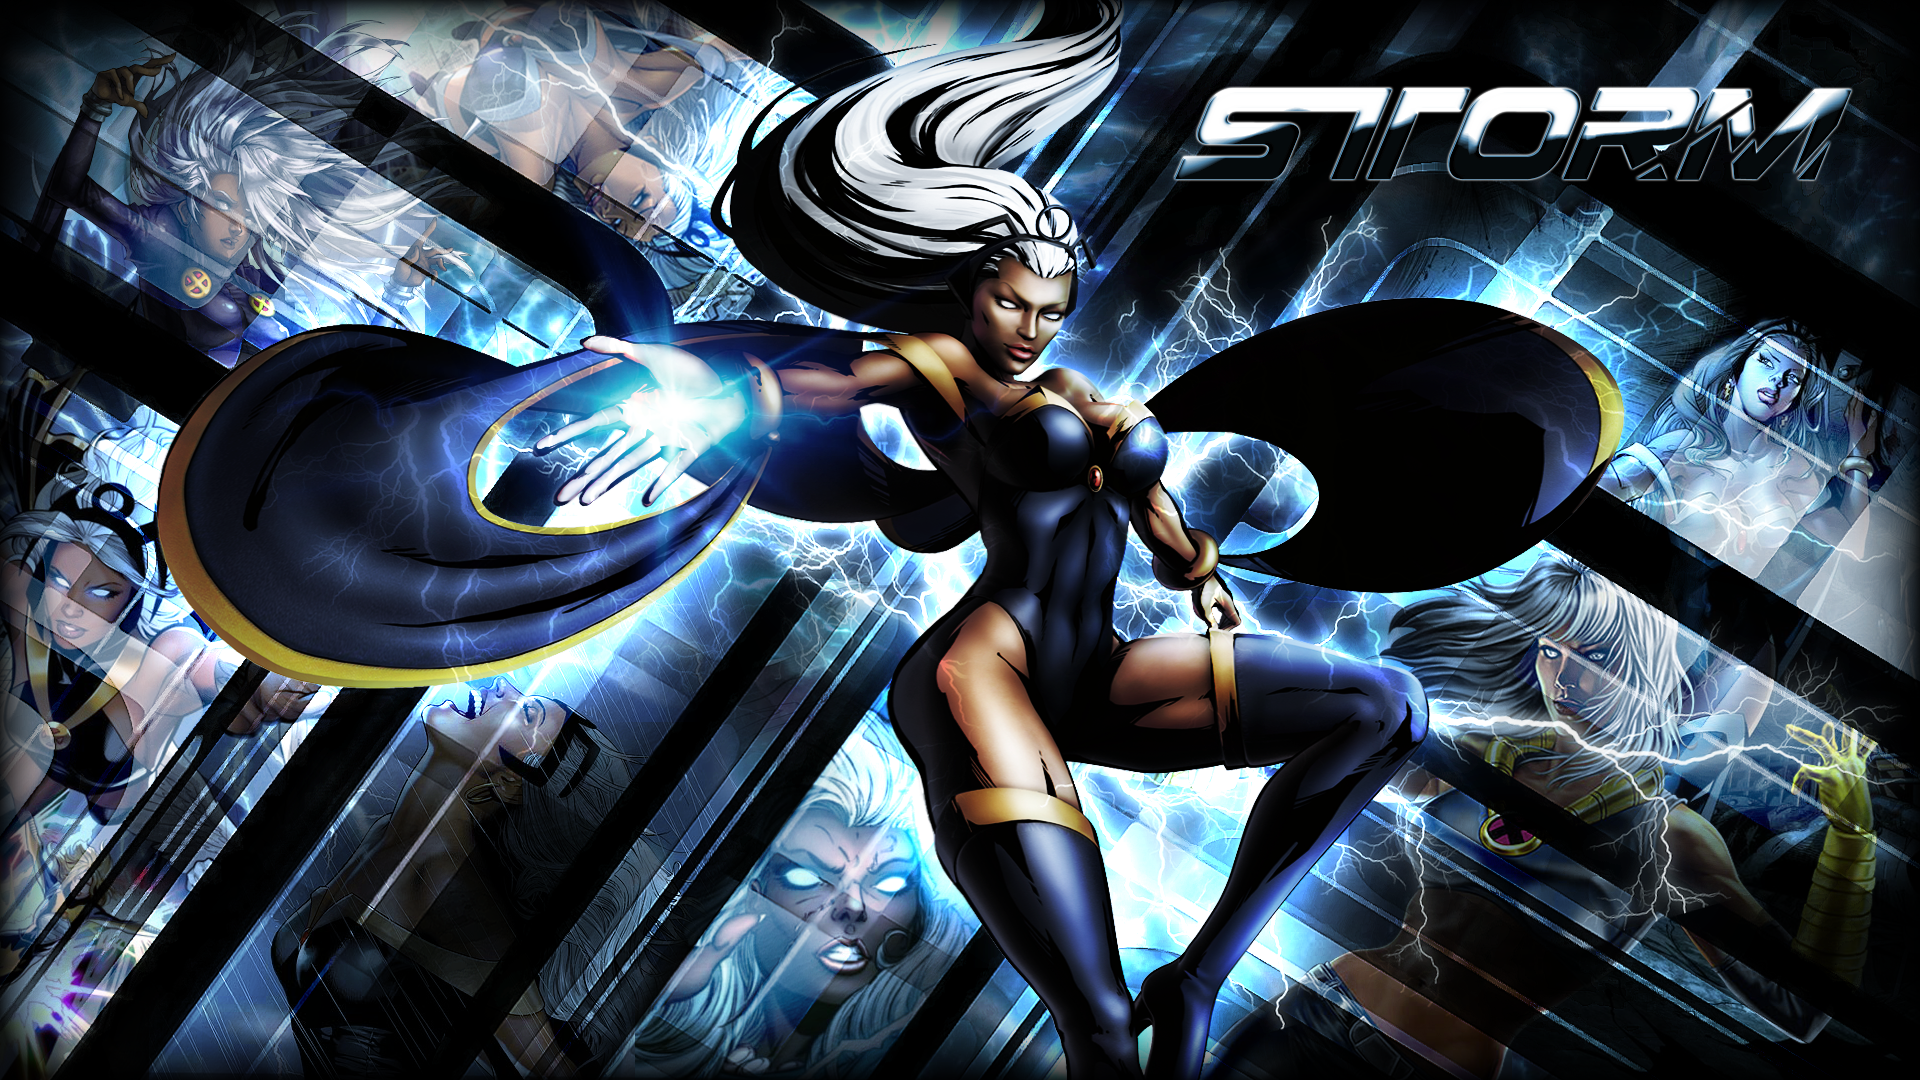 A Showcase of Electrifying Storm Artworks   Black panther, Storms ...